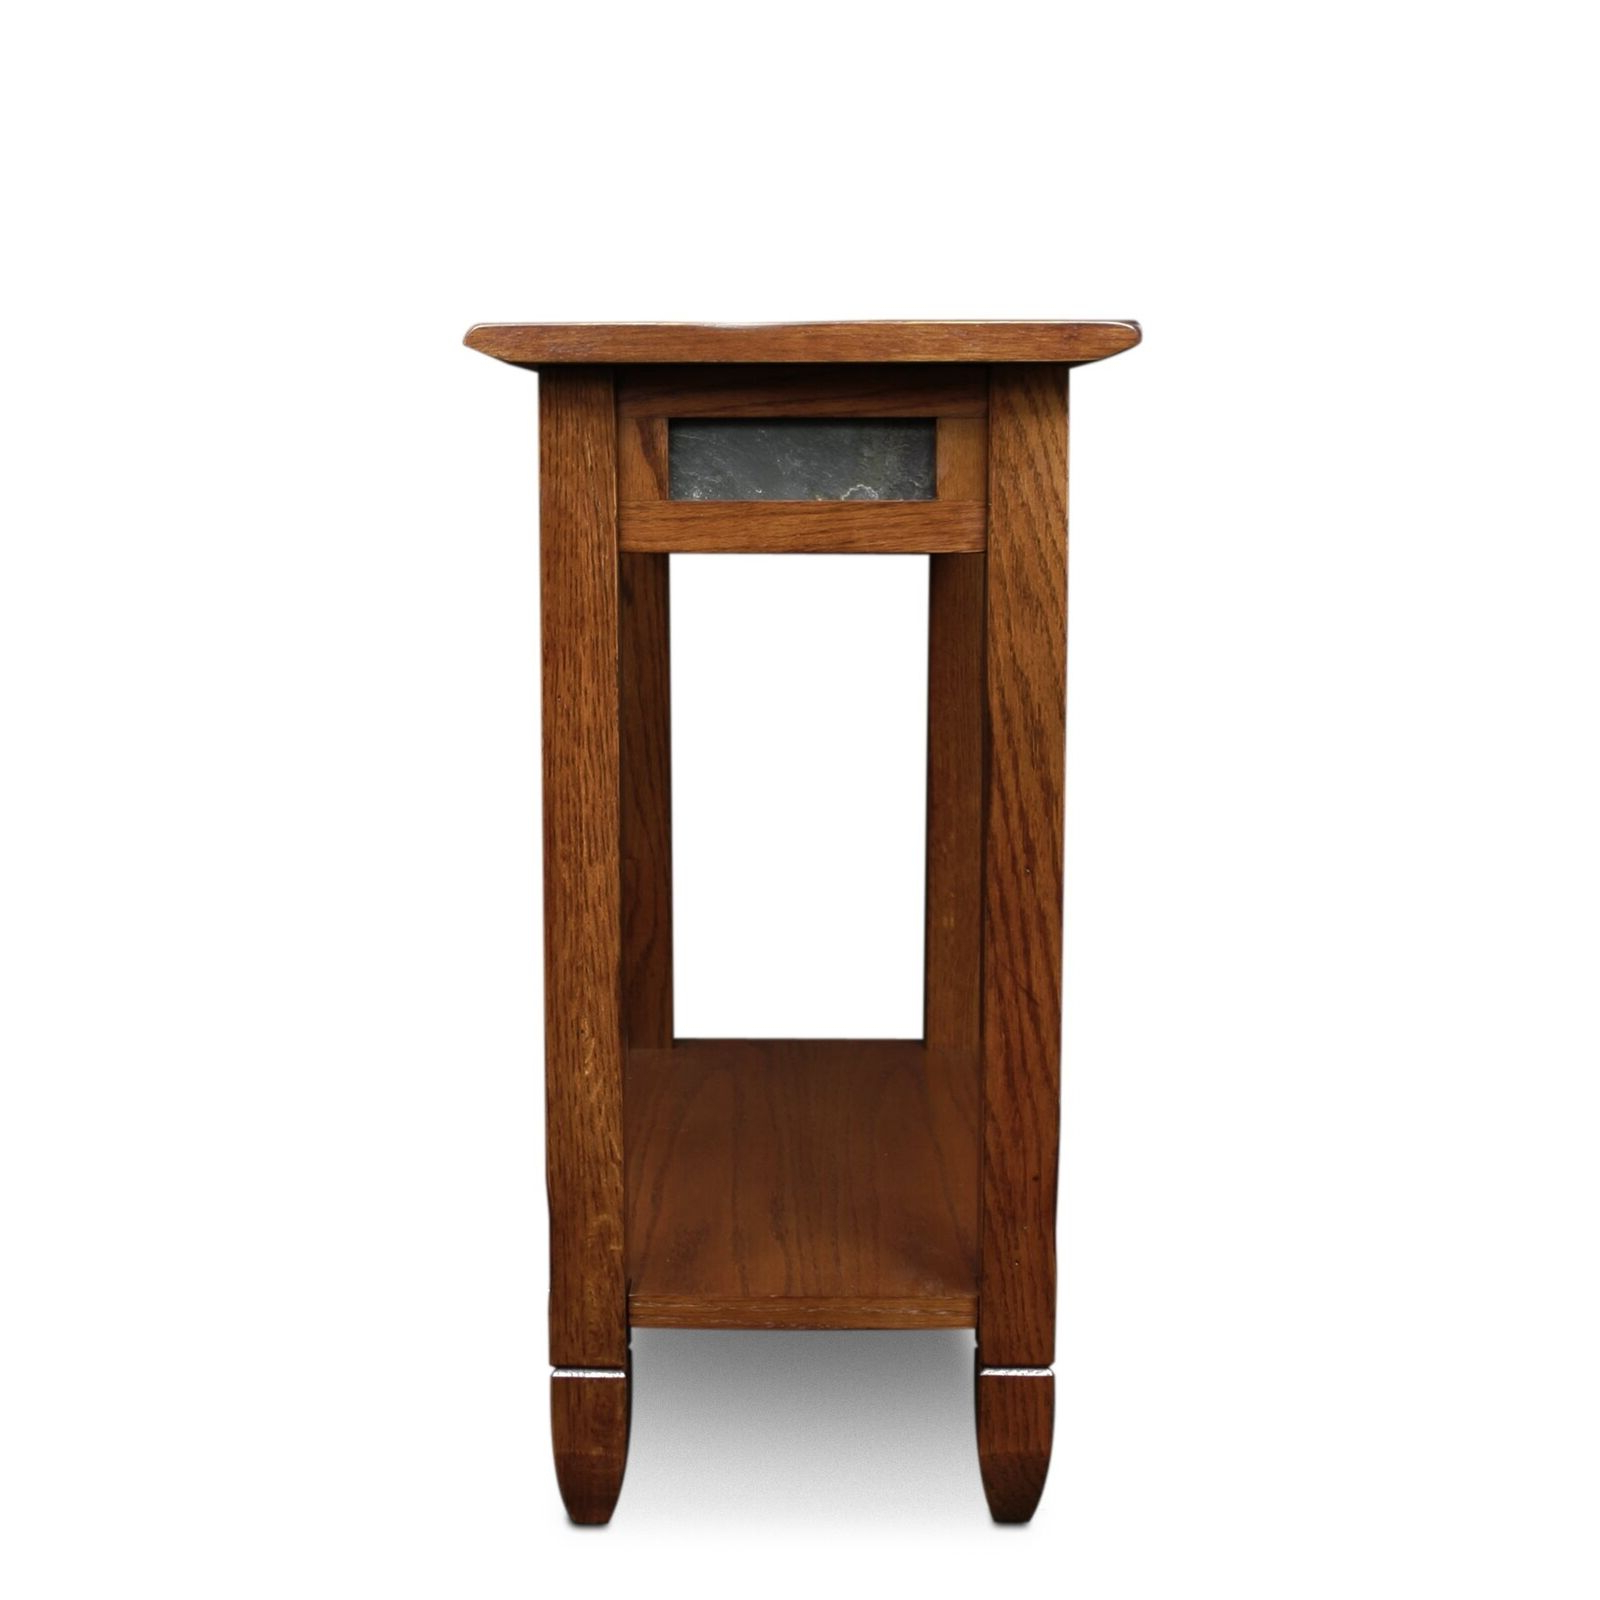 Latest Copper Grove Ixia Rustic Oak And Slate Tile Coffee Tables Pertaining To Leick 10060 Rustic Oak Chairside End Table (View 6 of 20)